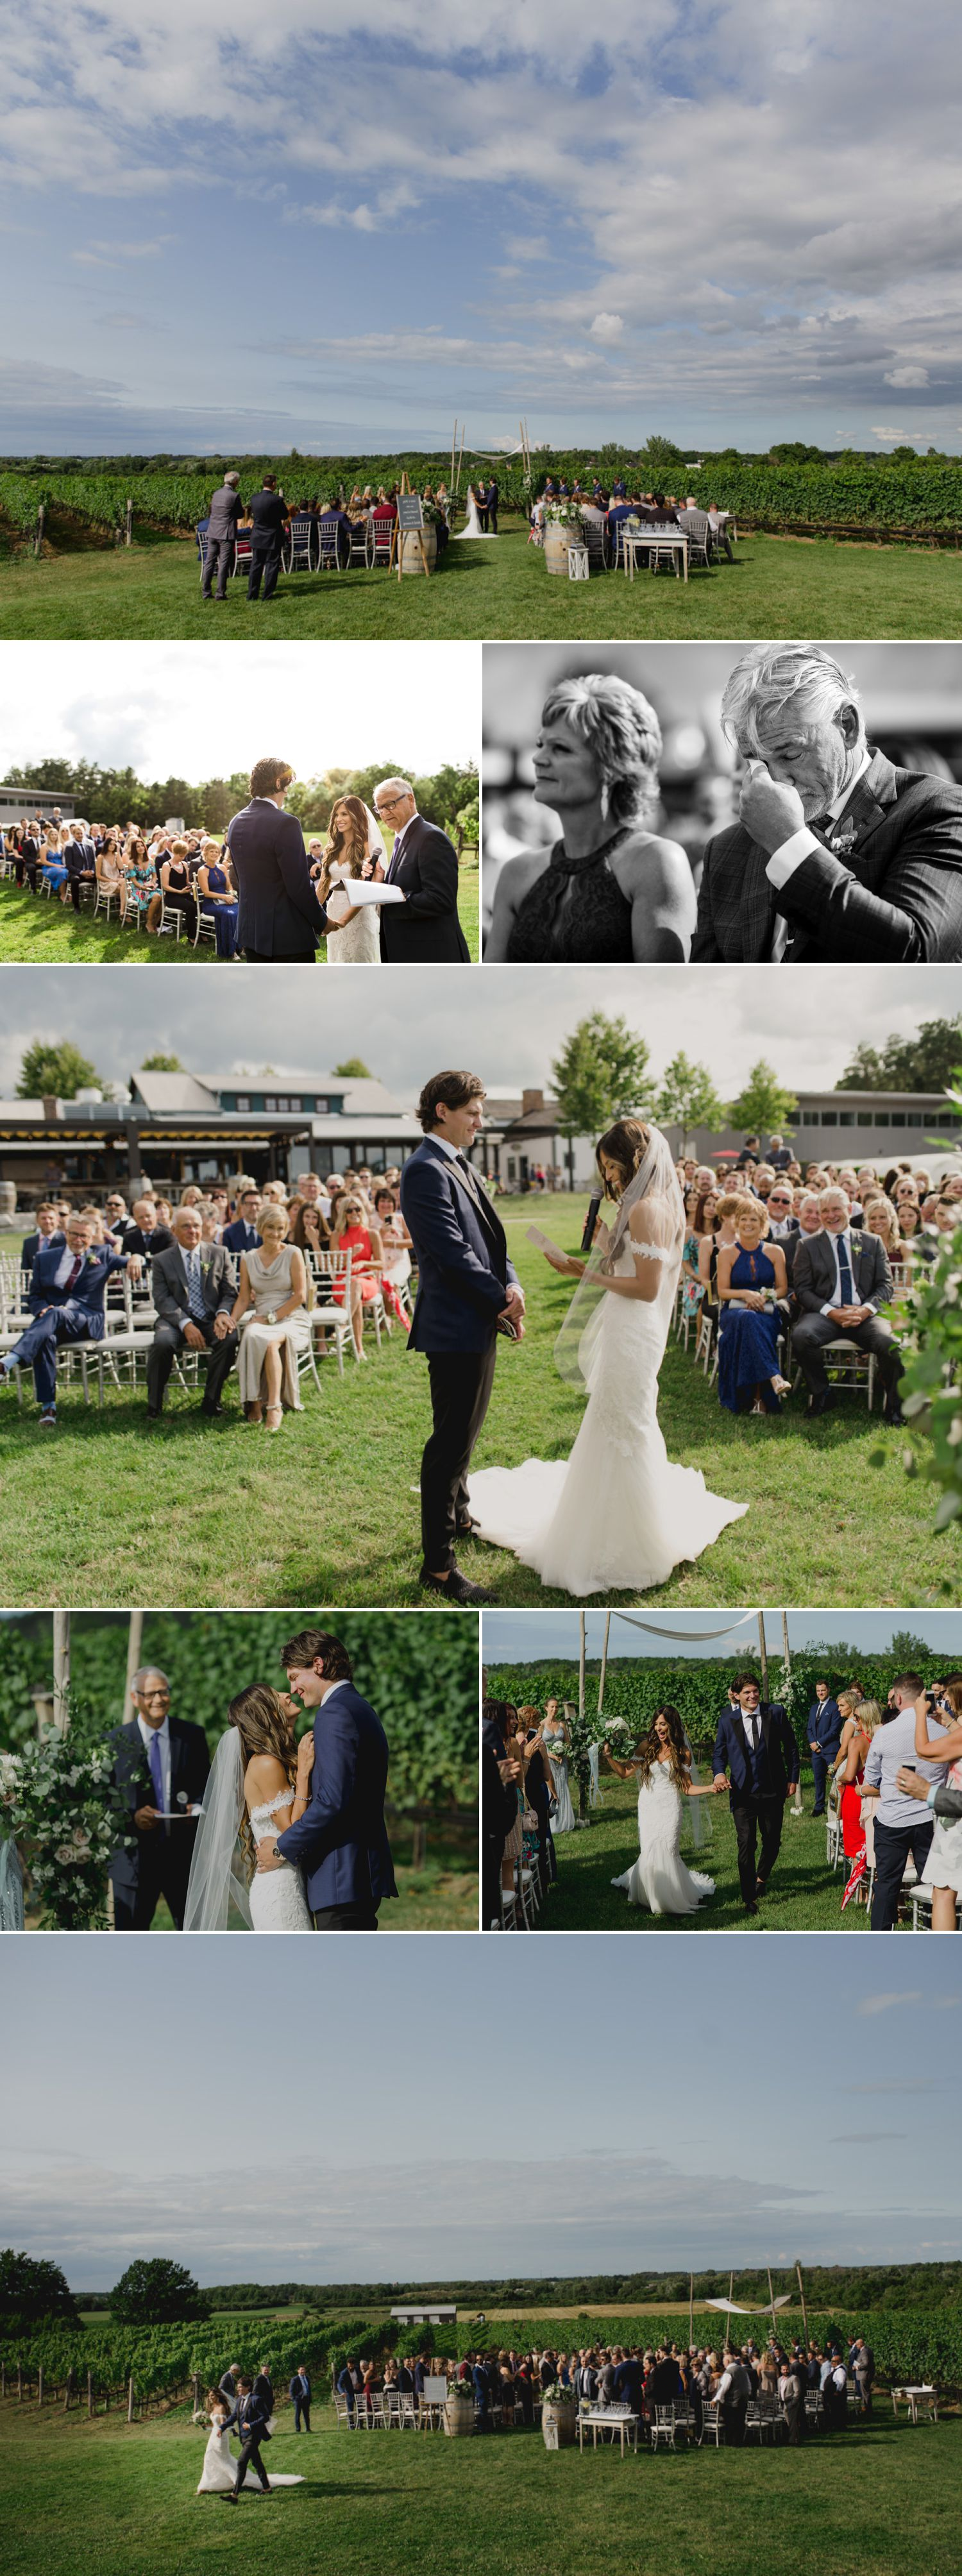 A wedding ceremony taking place at The Ravine Vineyard Estate Winery in Niagara-on-the-Lake